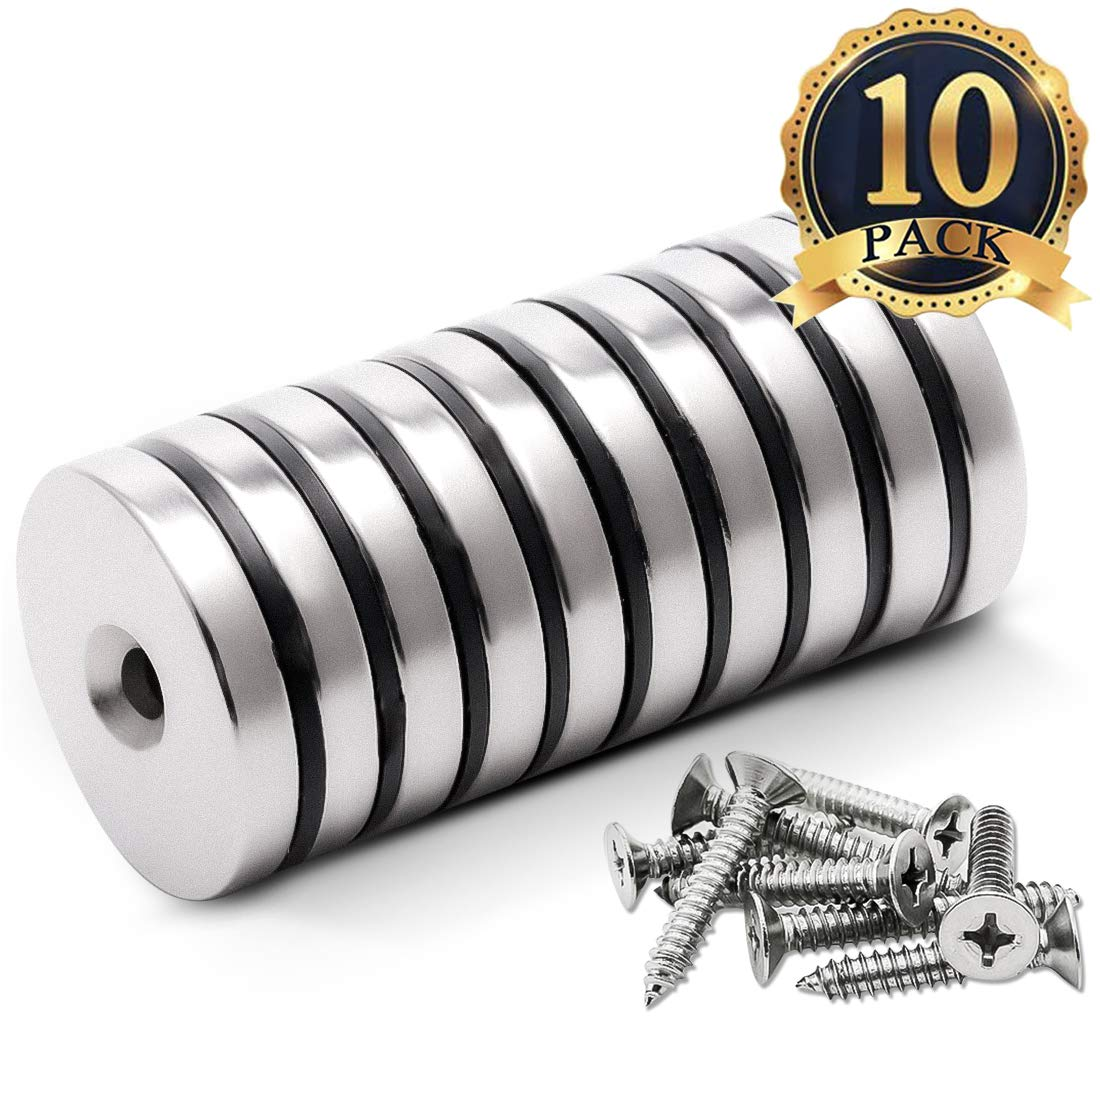 FINDMAG 10 Pack 1.26''D x 0.2''H Neodymium Disc Countersunk Hole Magnets. Strong, Permanent, Rare Earth Magnets, with 10 Screws